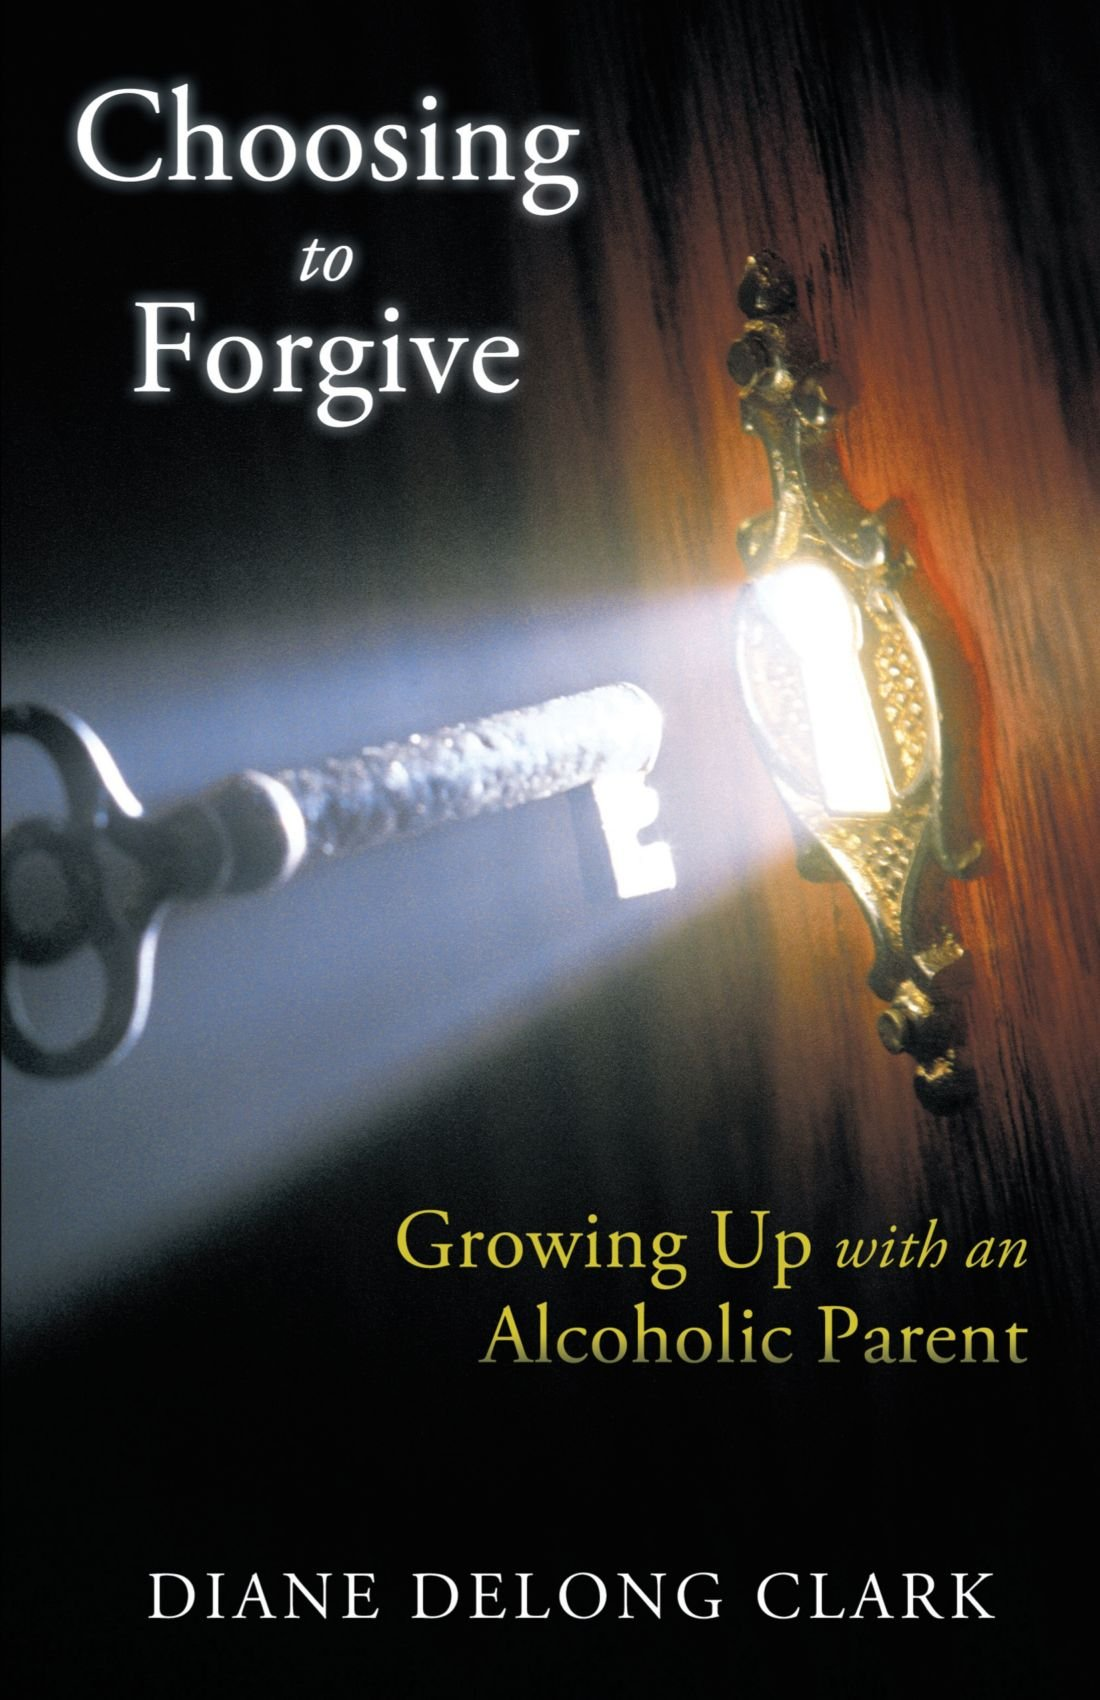 Choosing to Forgive: Growing Up with an Alcoholic Parent